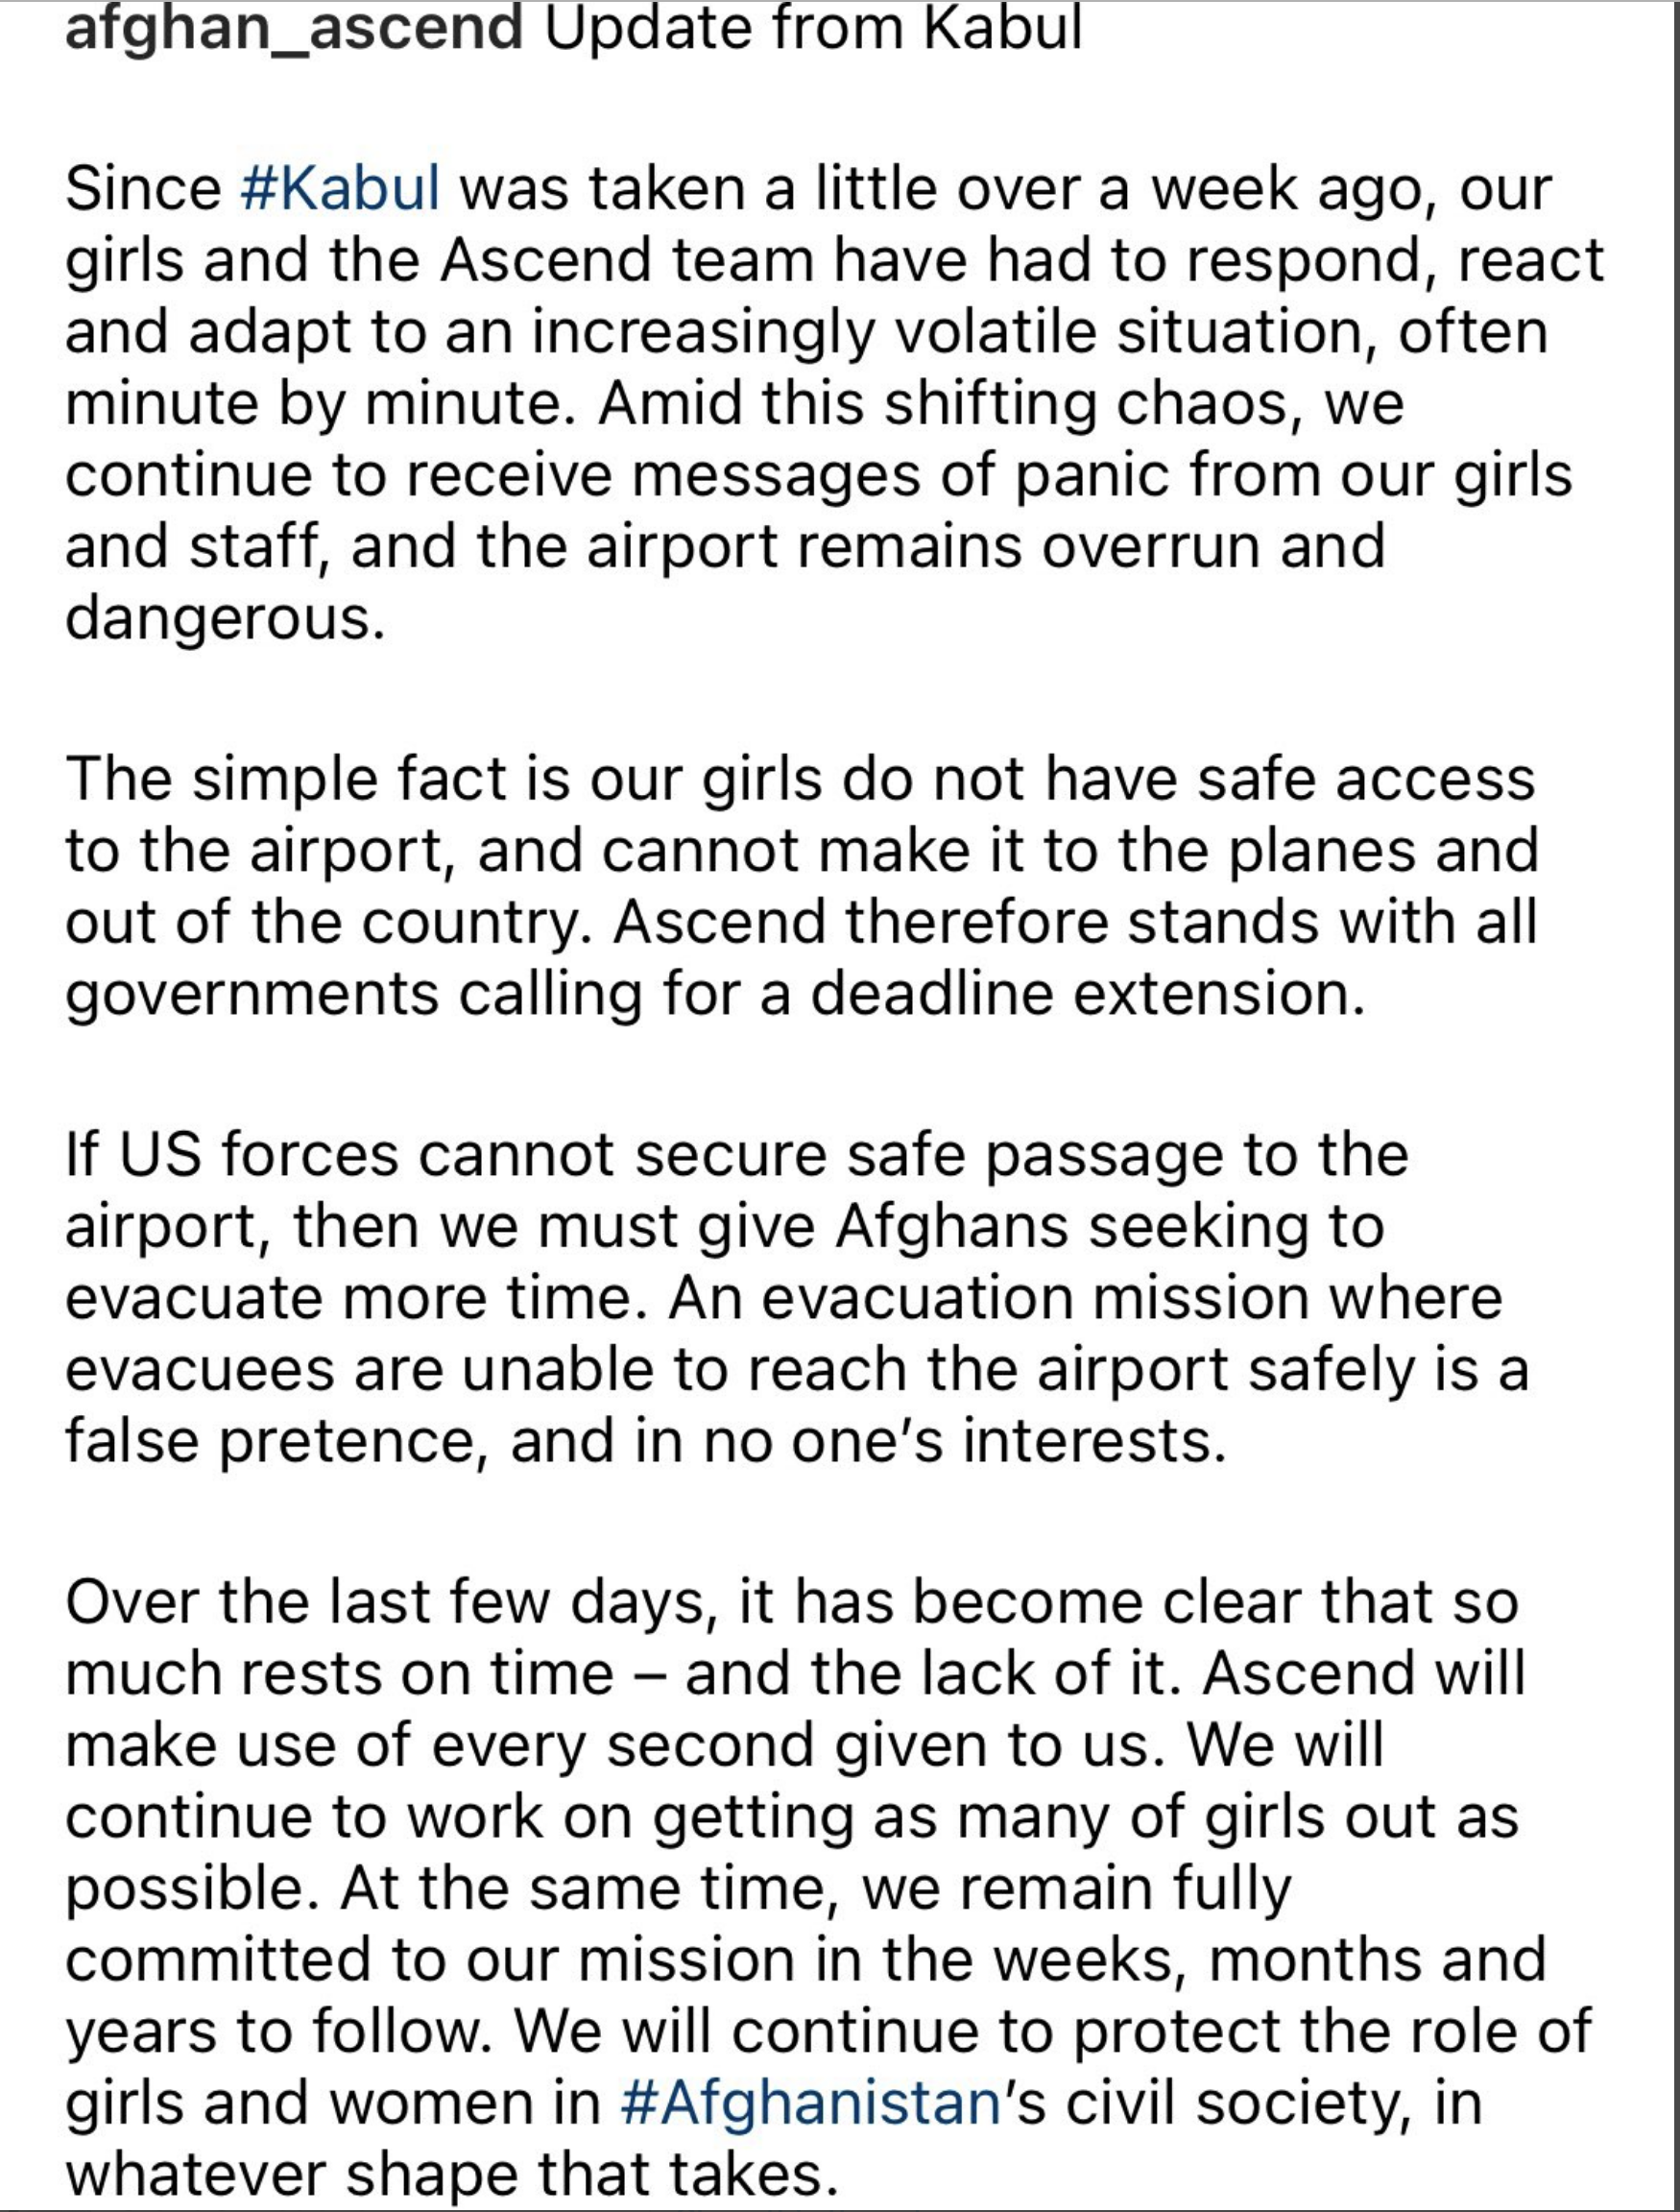 Screen-Shot-2021-08-25-at-4.04.30-PM Hillary Clinton Flies Targeted Afghan Women To Safety On Private Charters Featured Human Rights Politics Top Stories Women's Rights